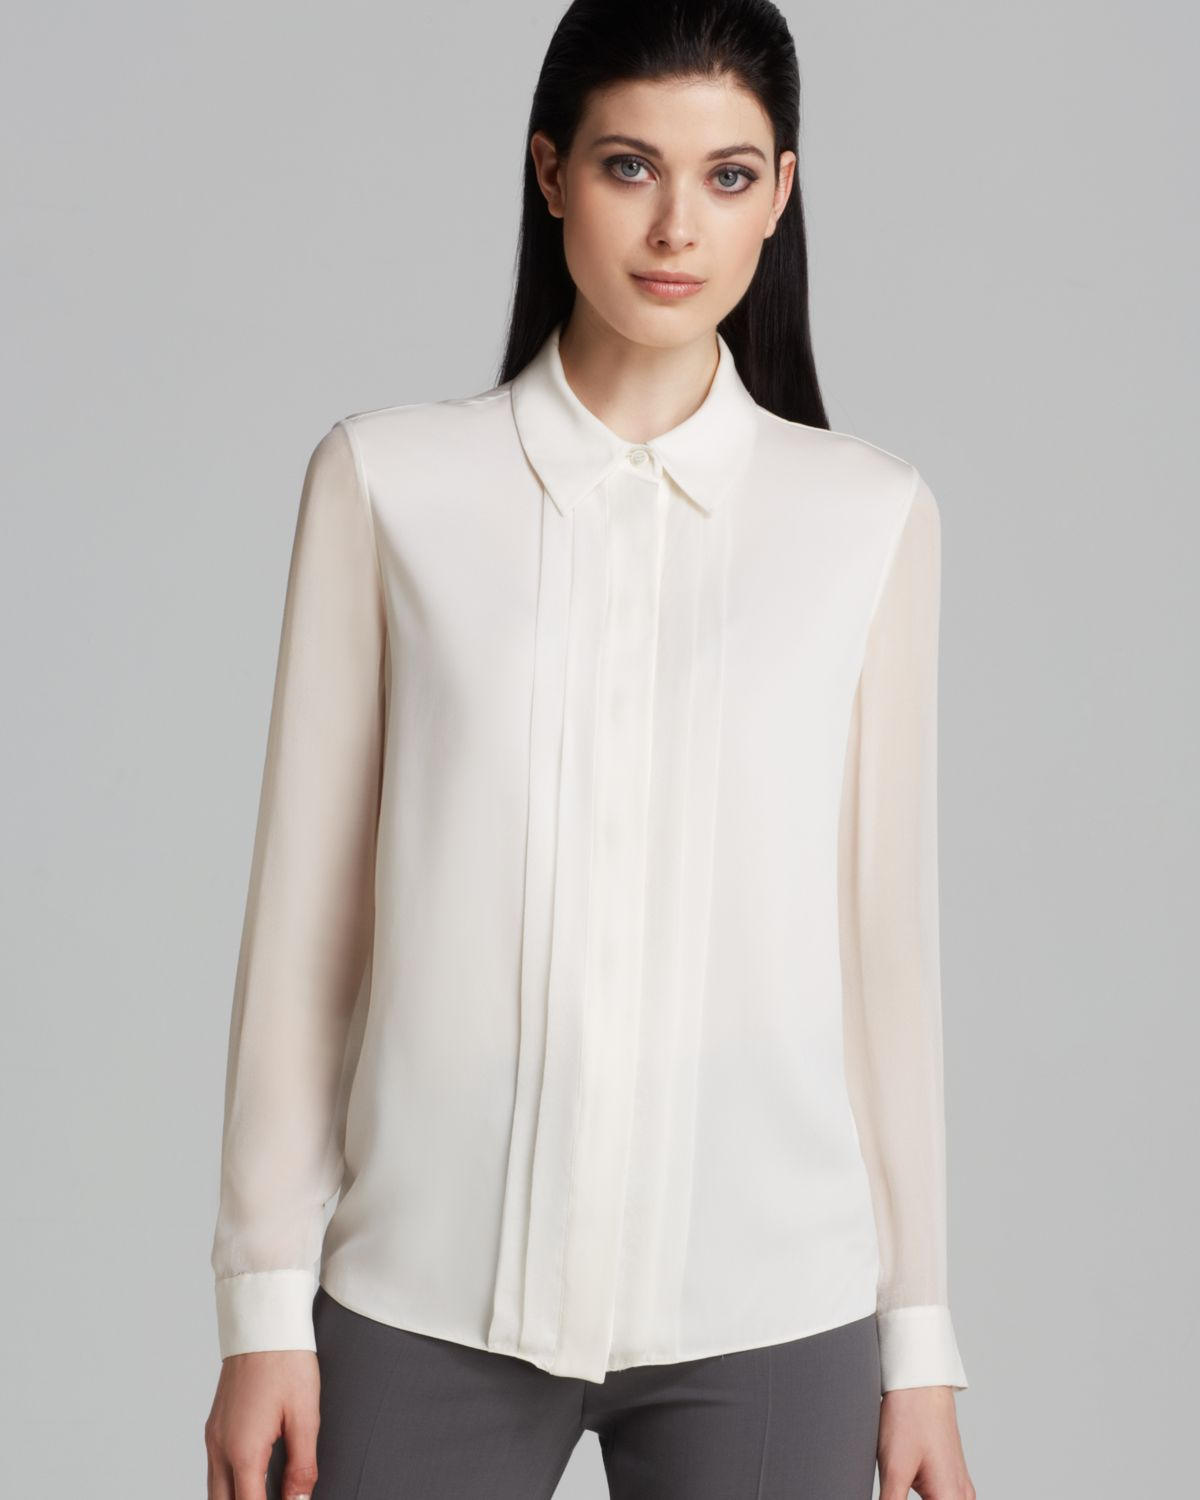 Armani Blouse - Sheer Sleeve in White | Lyst